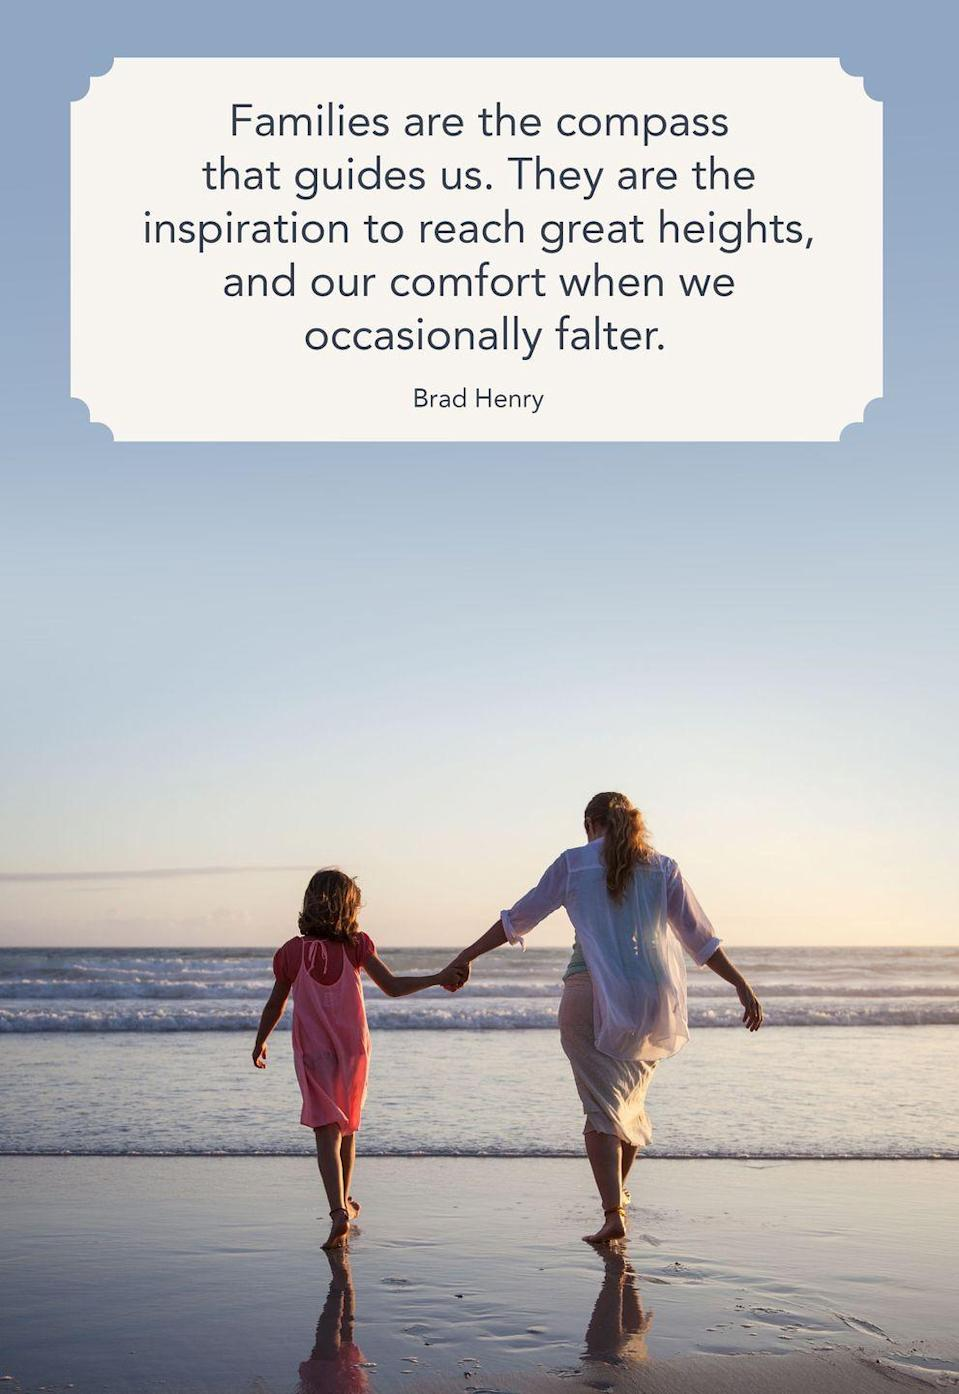 "<p>""Families are the compass that guides us. They are the inspiration to reach great heights, and our comfort when we occasionally falter.""</p>"